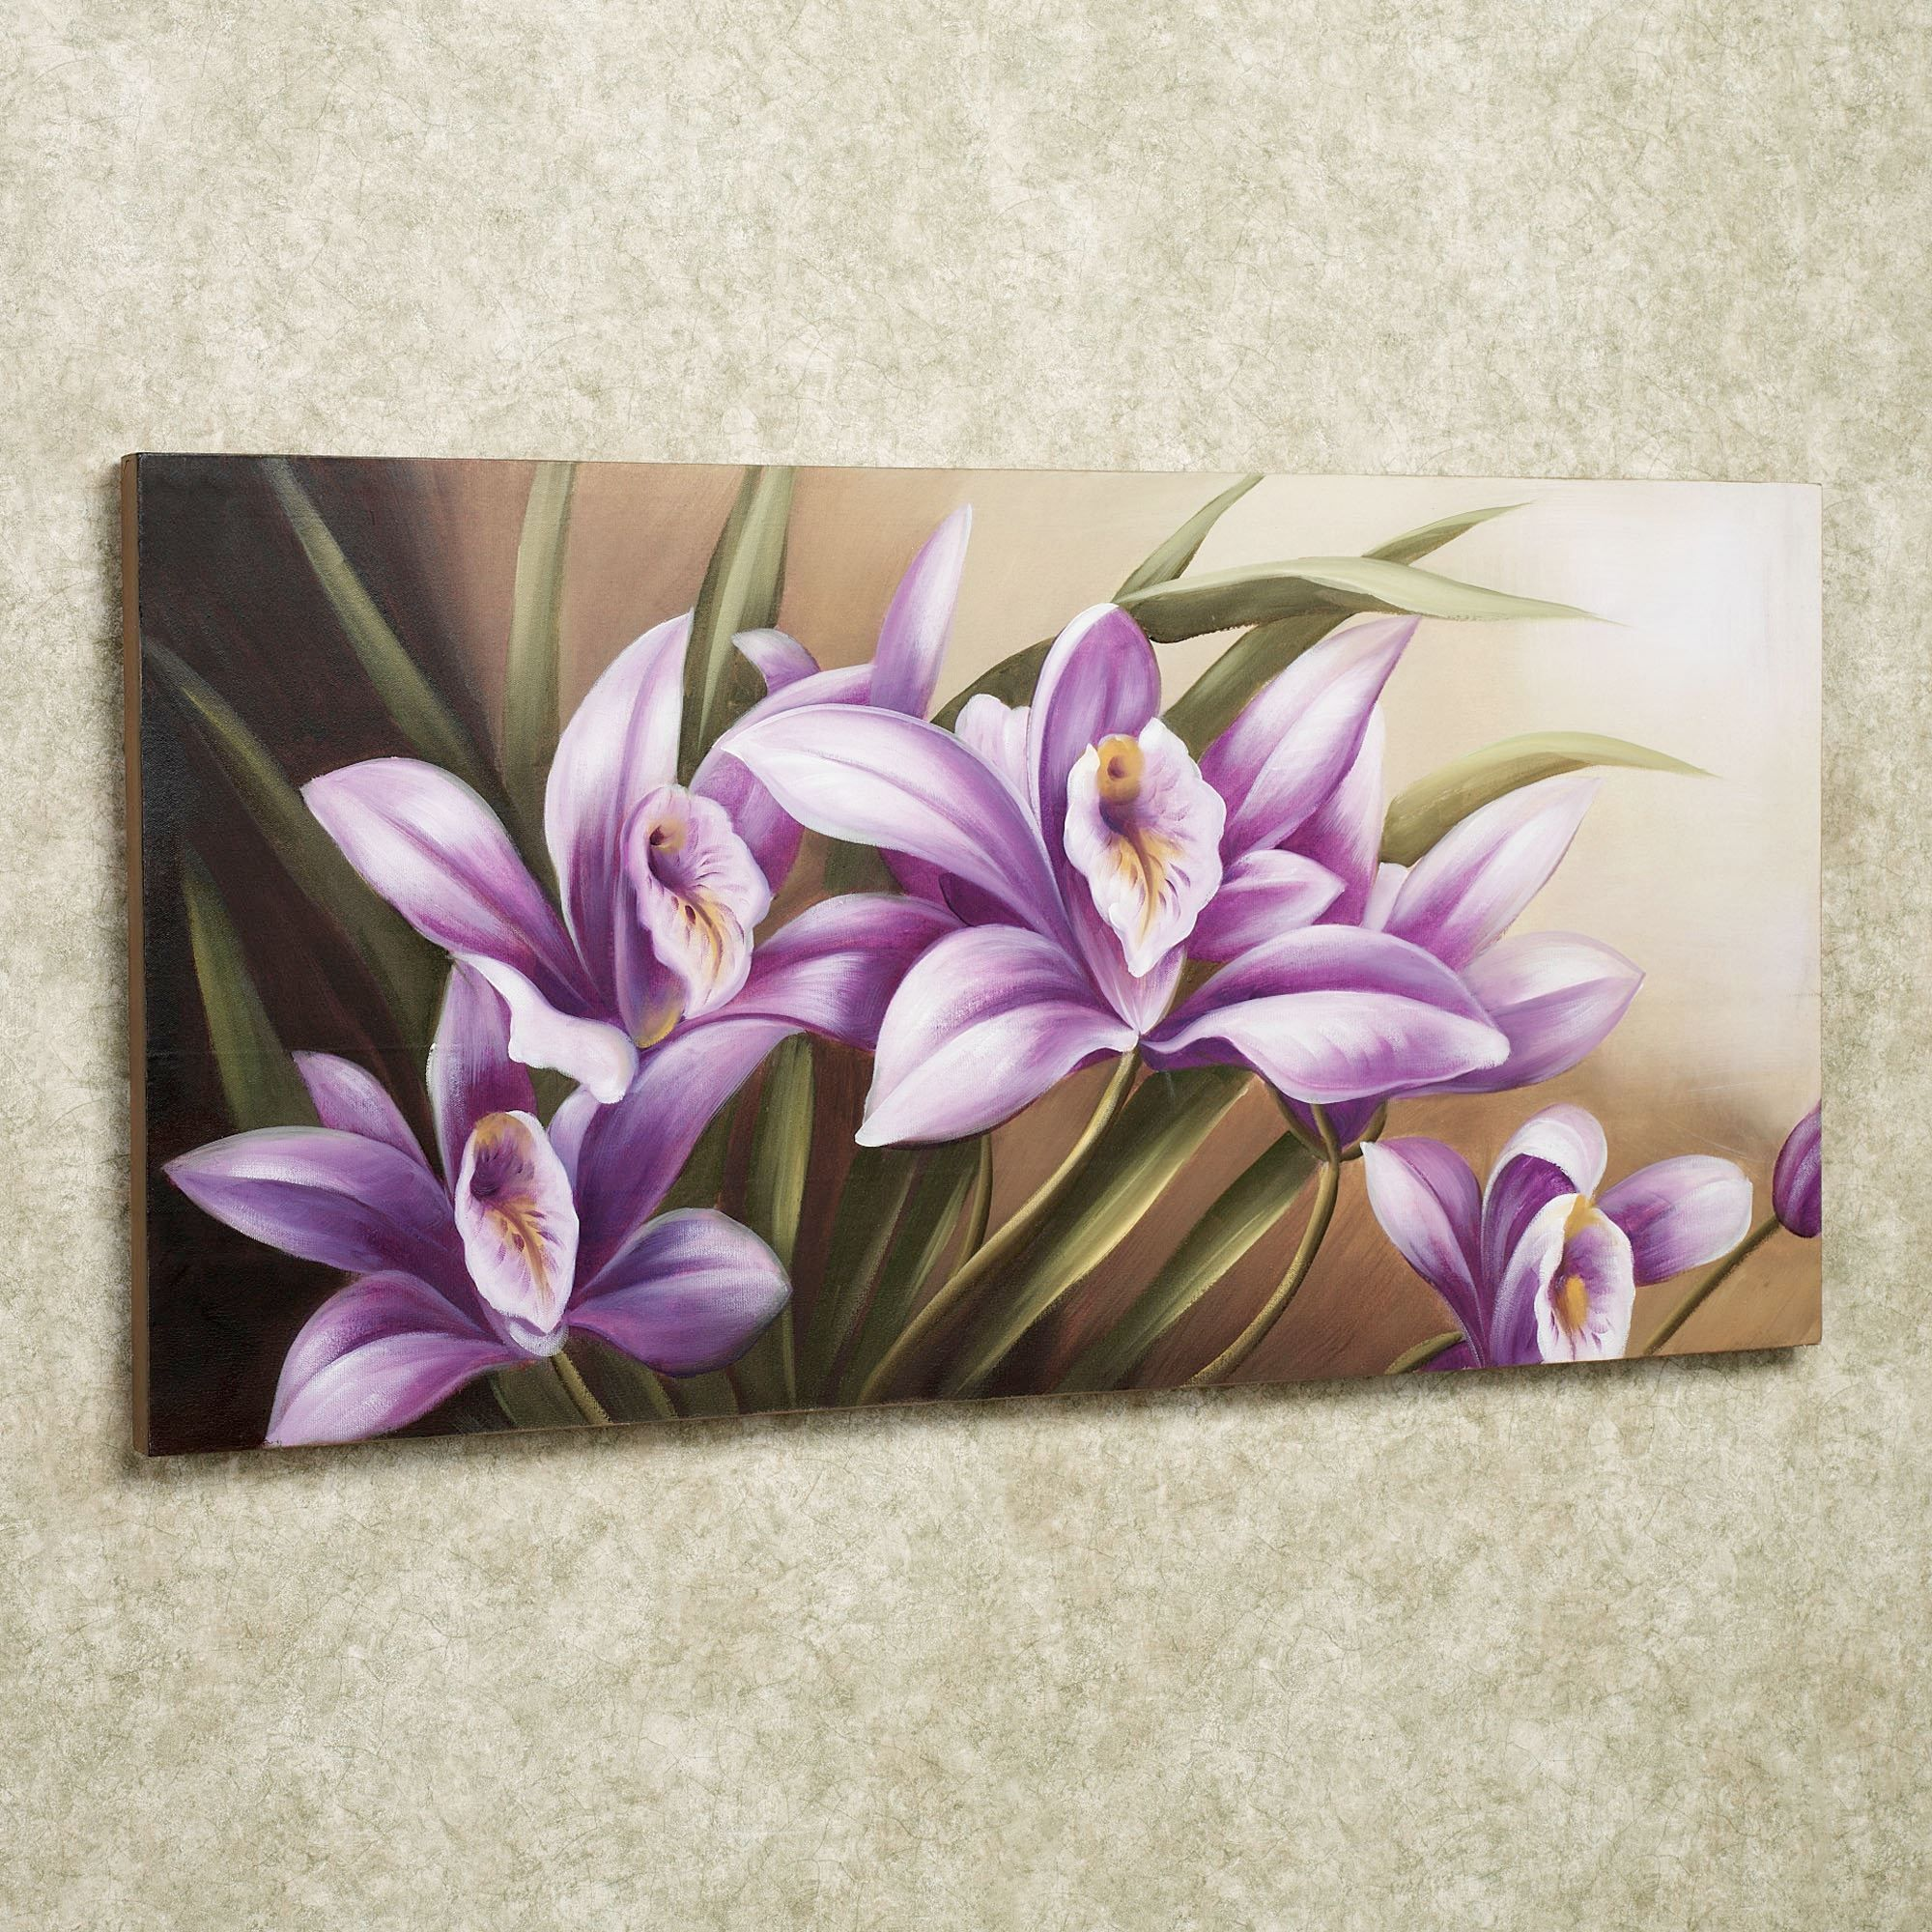 Wild Orchid Handpainted Floral Canvas Wall Art Floral Wall Art Canvases Flower Canvas Flower Painting Canvas